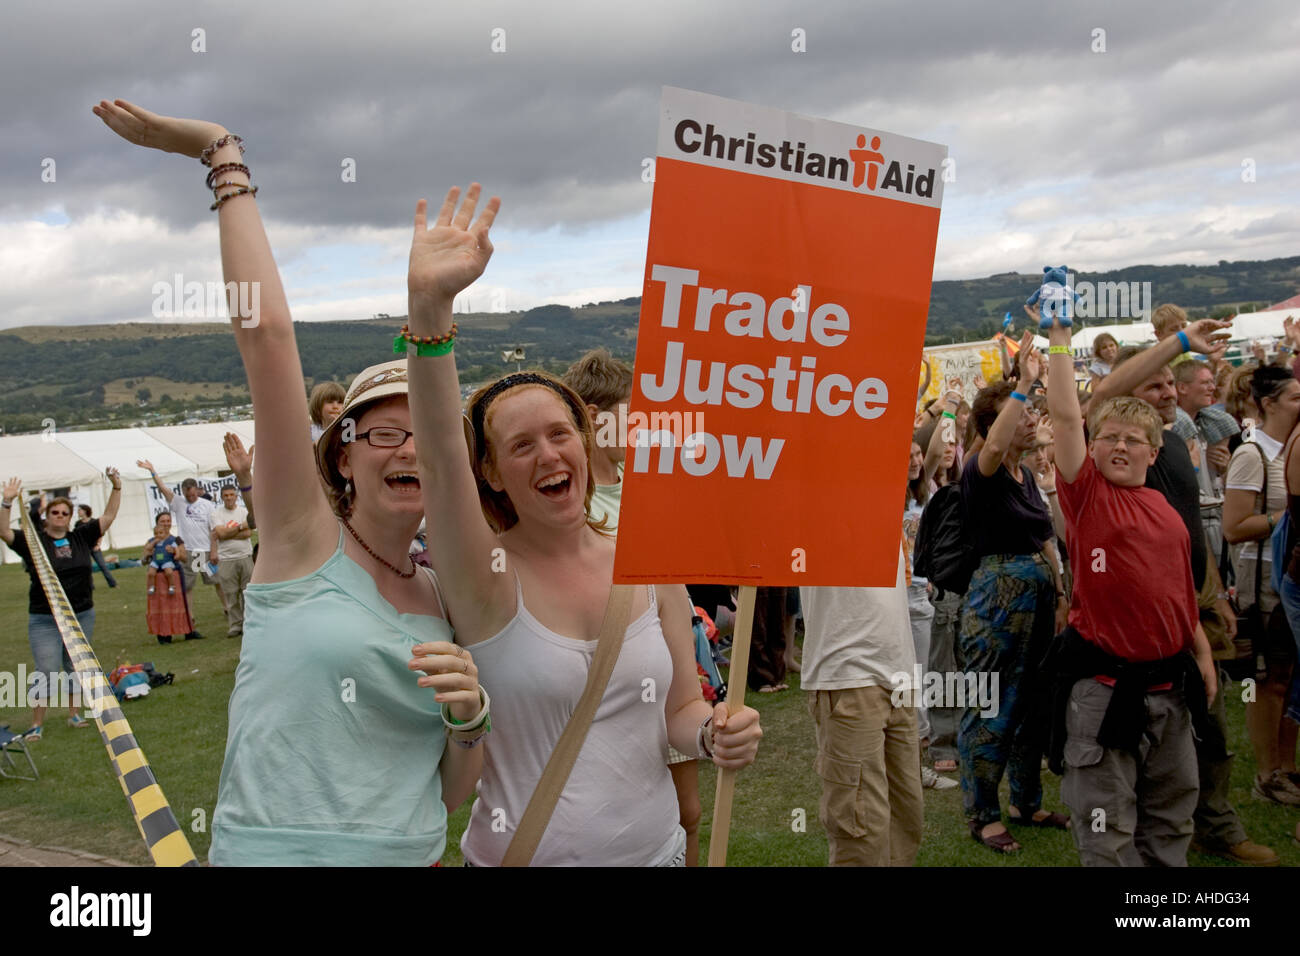 Two young women wave Christian Aid Trade Justice Now placards at Make Poverty History demonstration Greenbelt 2005 UK - Stock Image